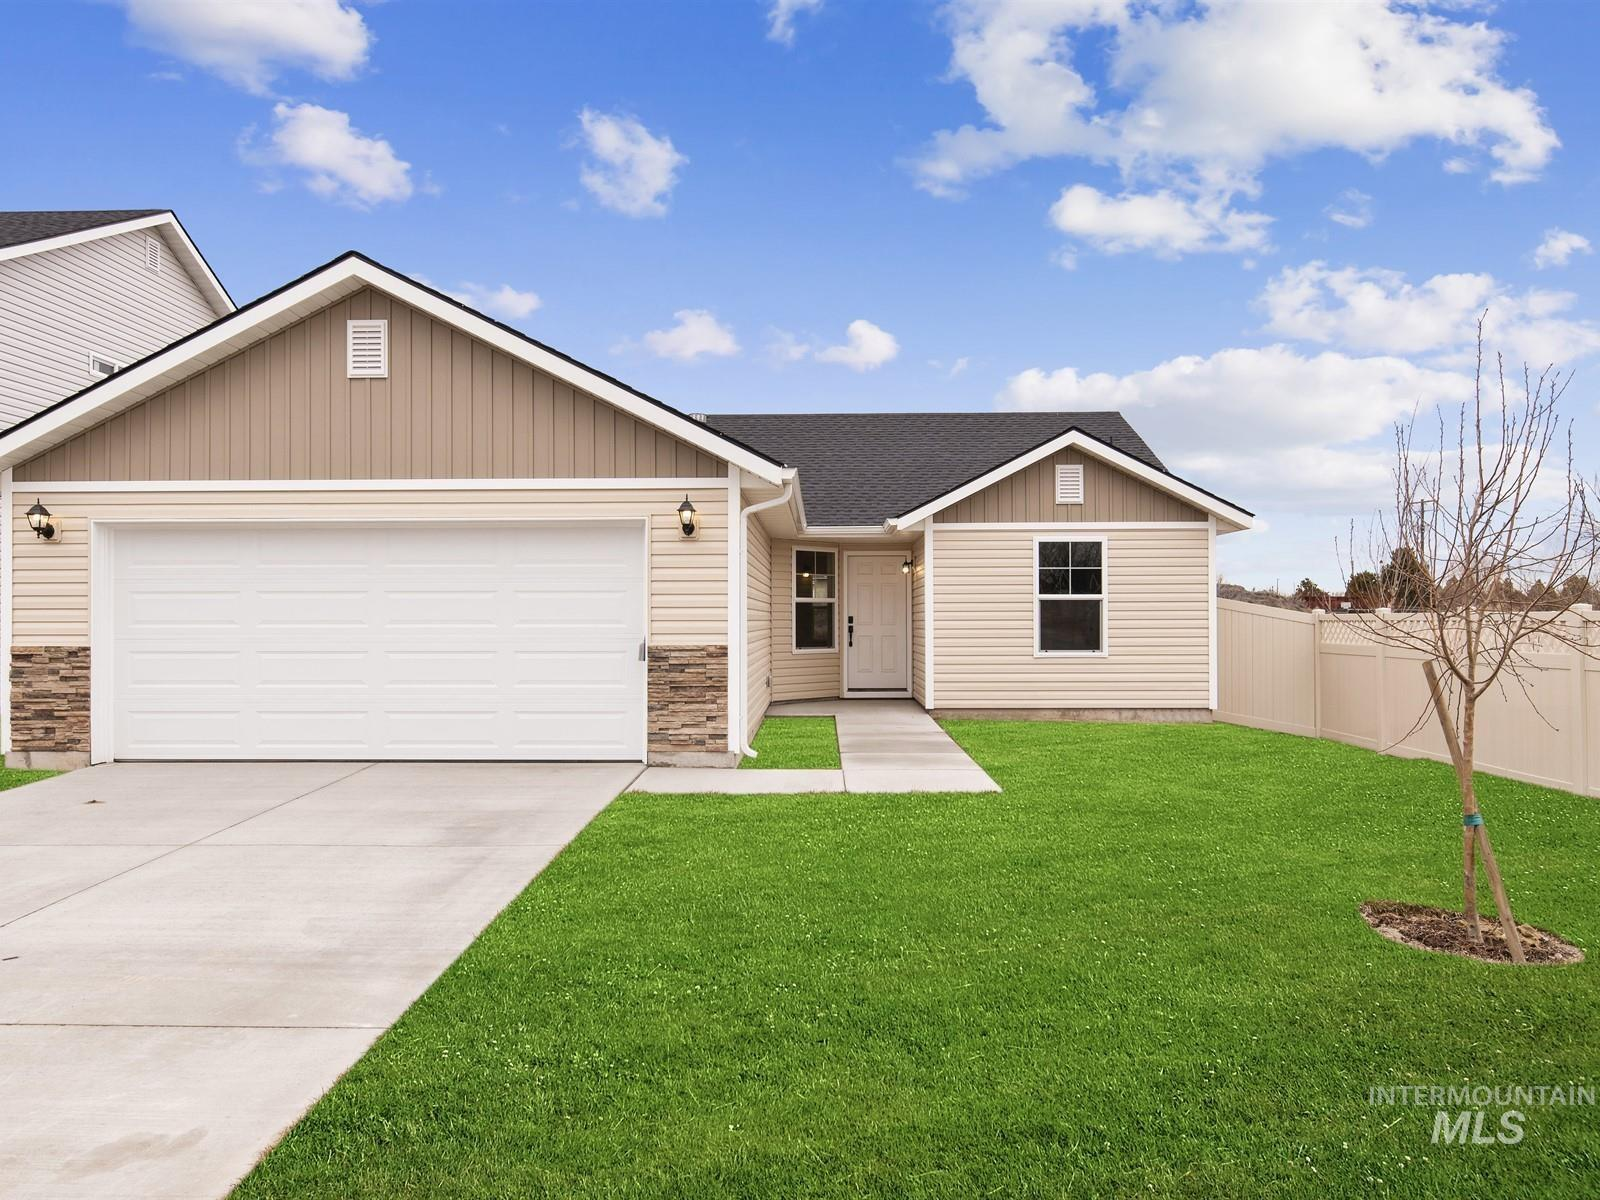 10280 Longtail Dr. Property Photo - Nampa, ID real estate listing